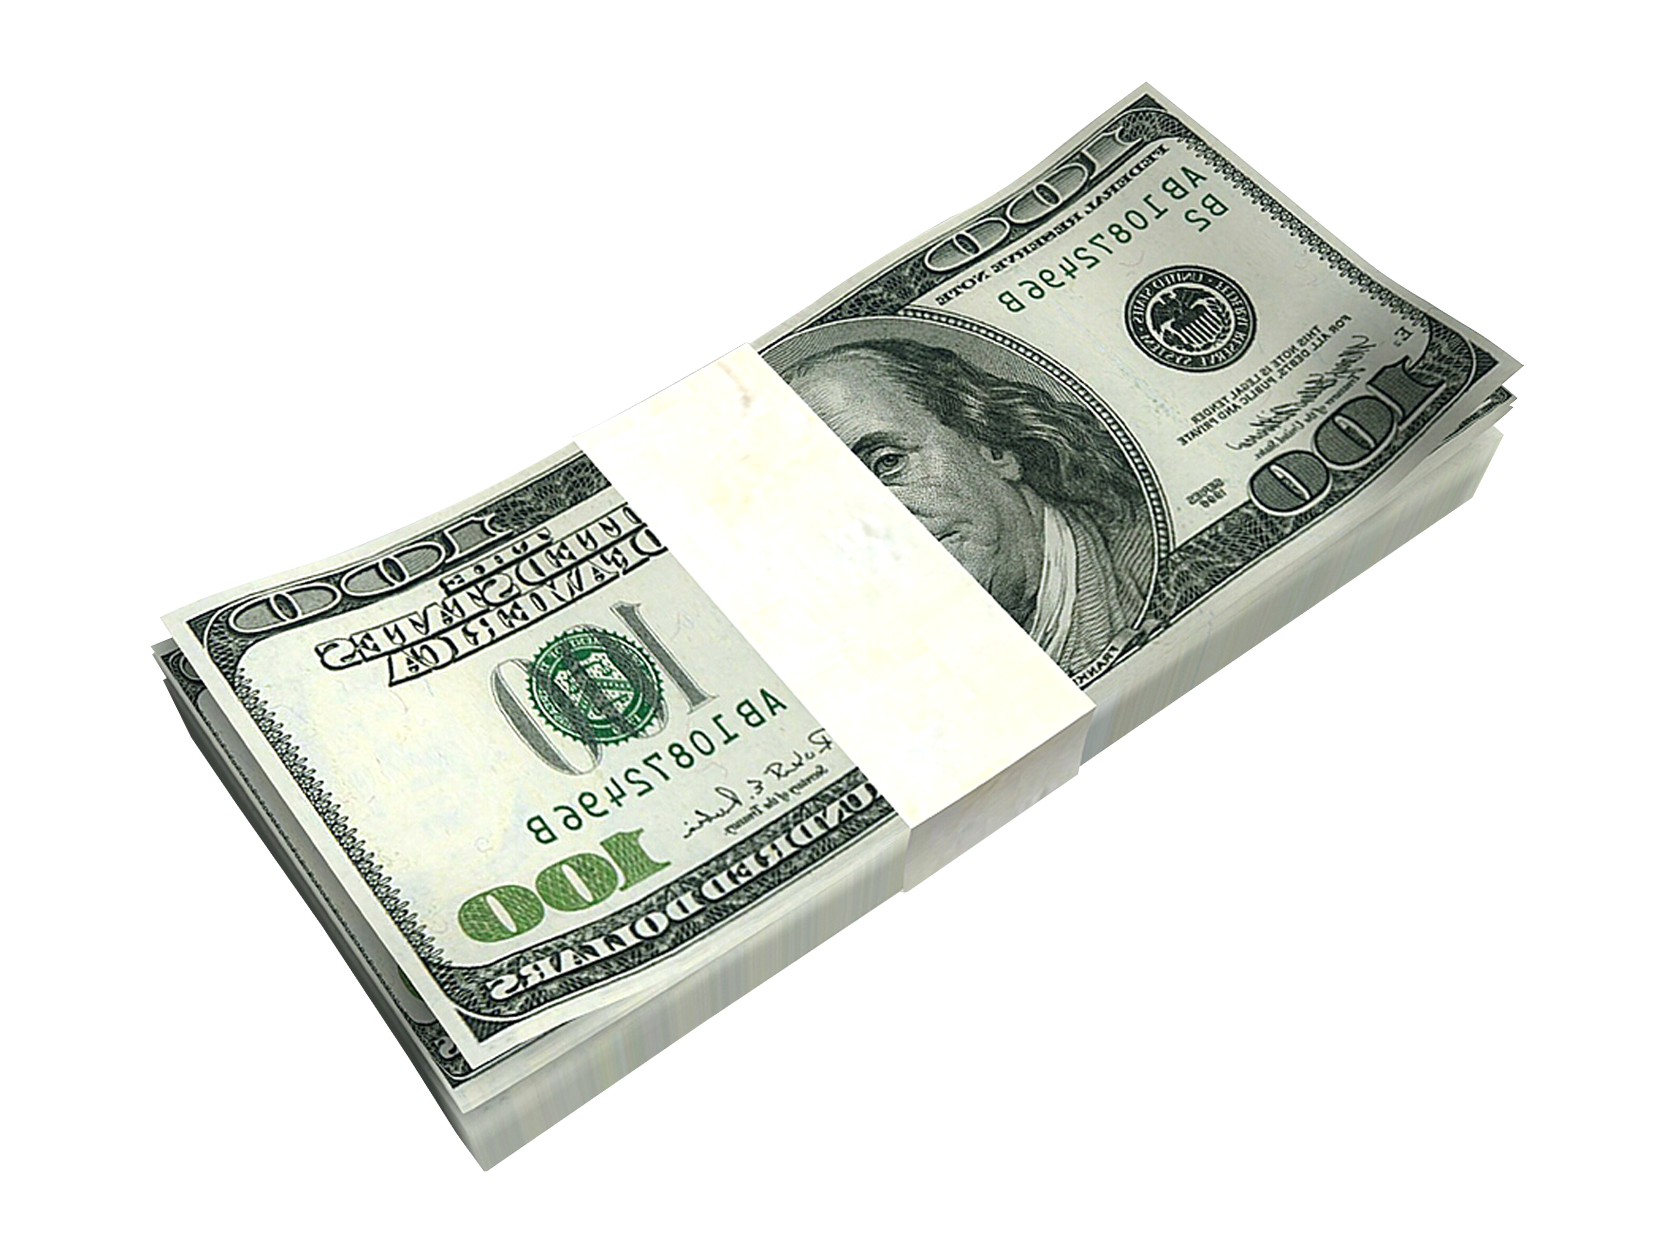 Cash transparent png. Dollar money image best